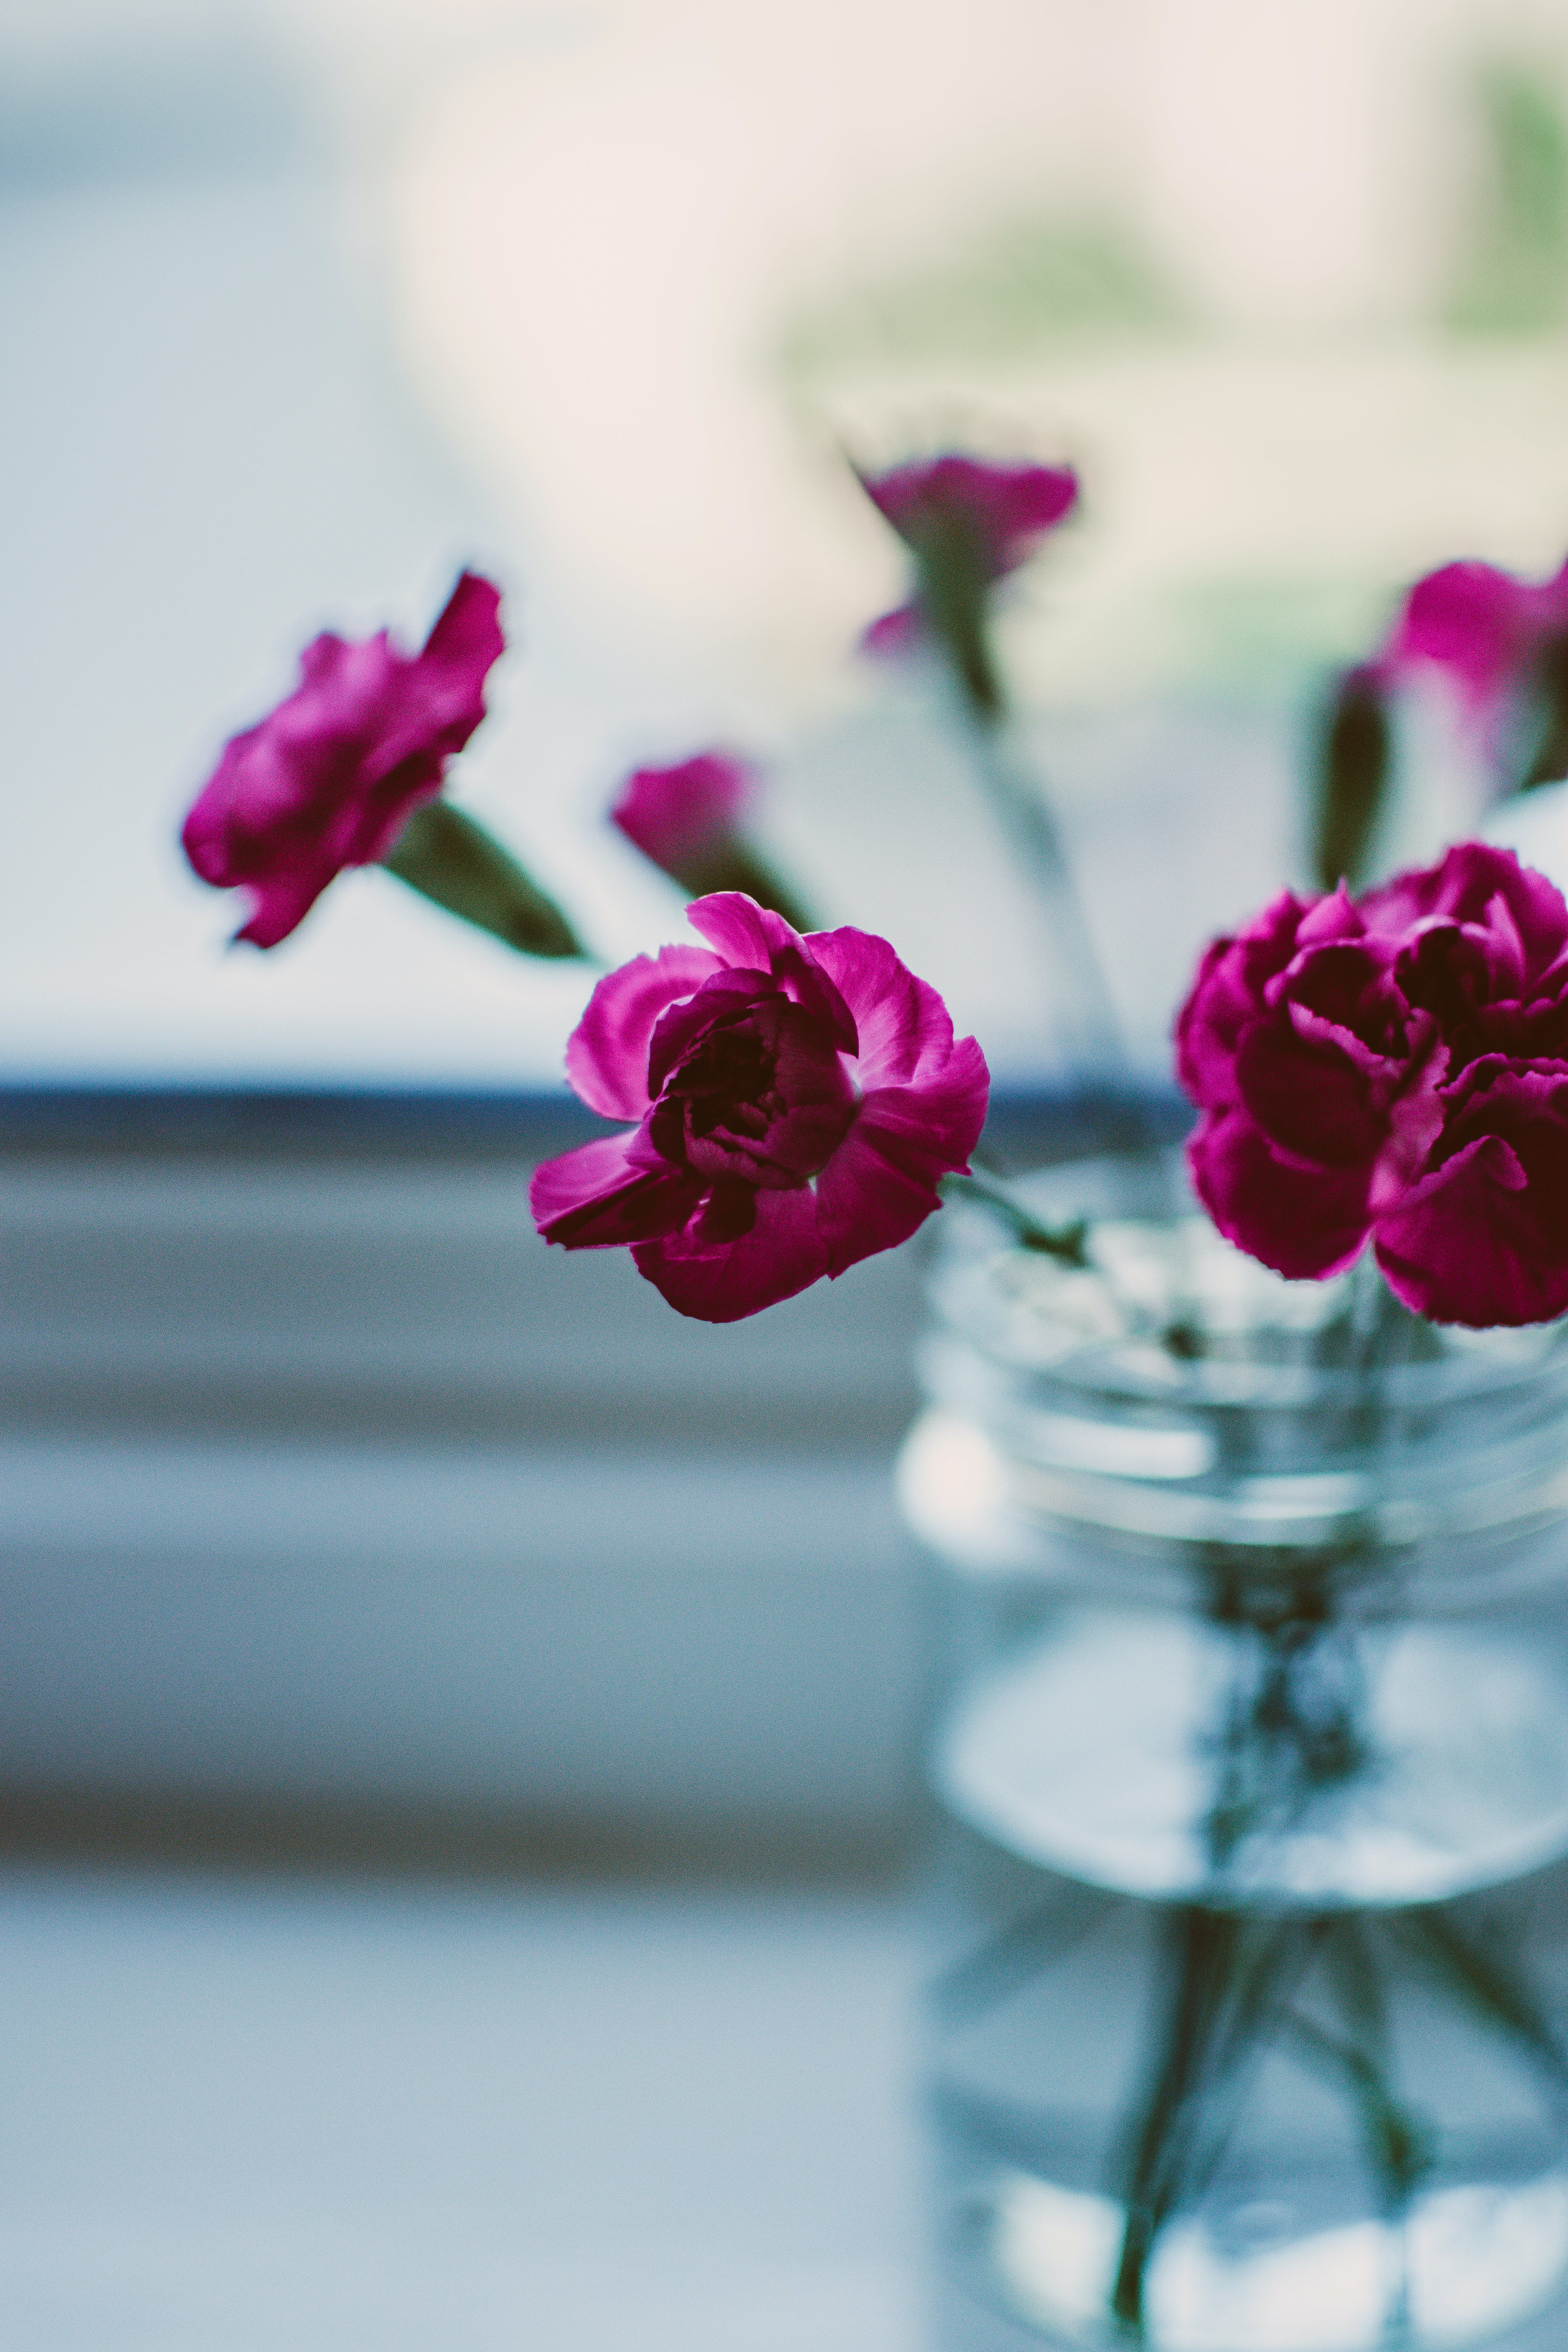 Selective Focus Photography Of Pink Petaled Flowers On Clear Glass Jar